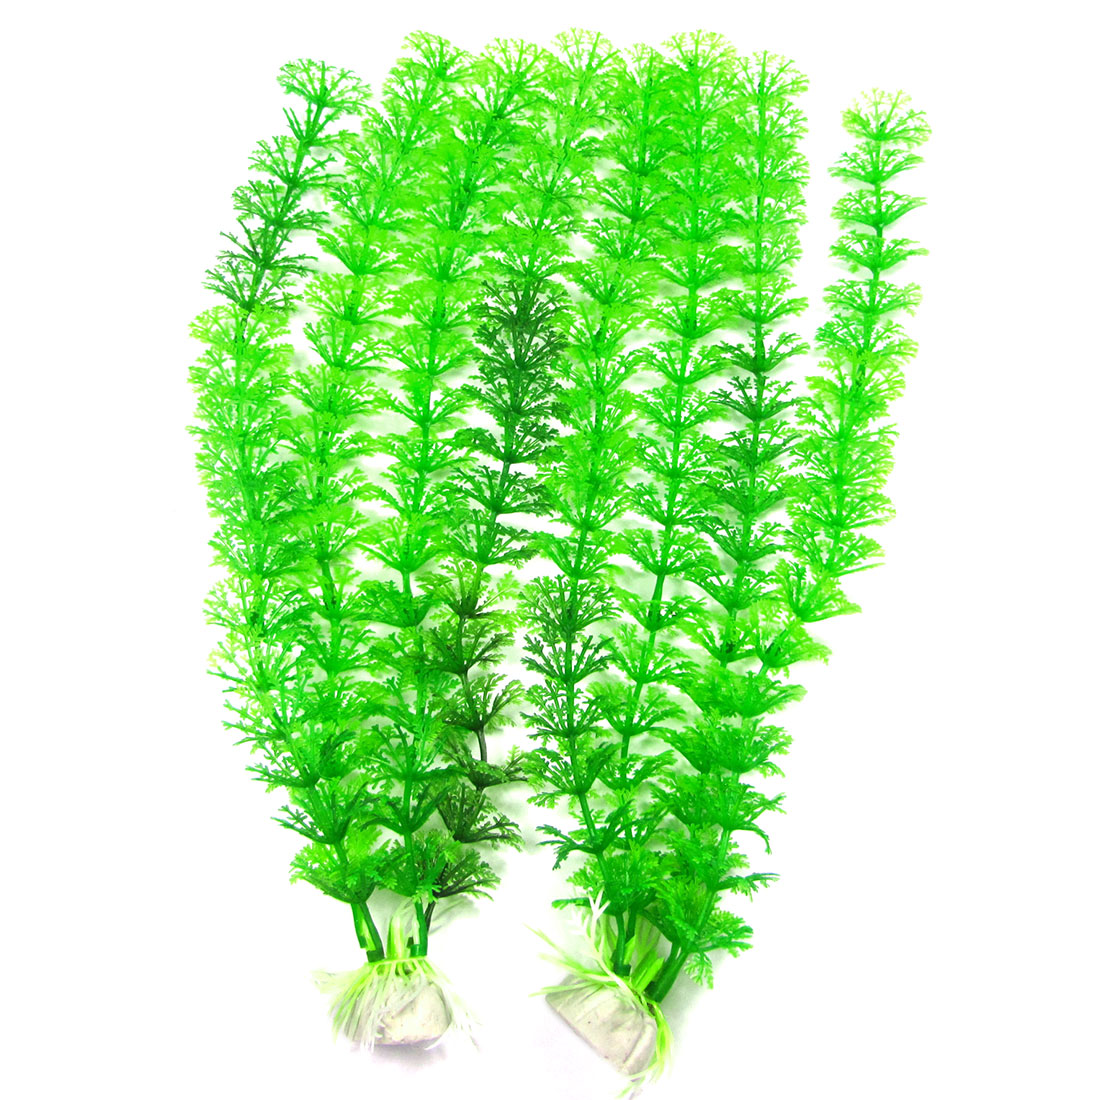 2PCS Green Plastic Grass Plants Decor Ornament for Tank Aquarium